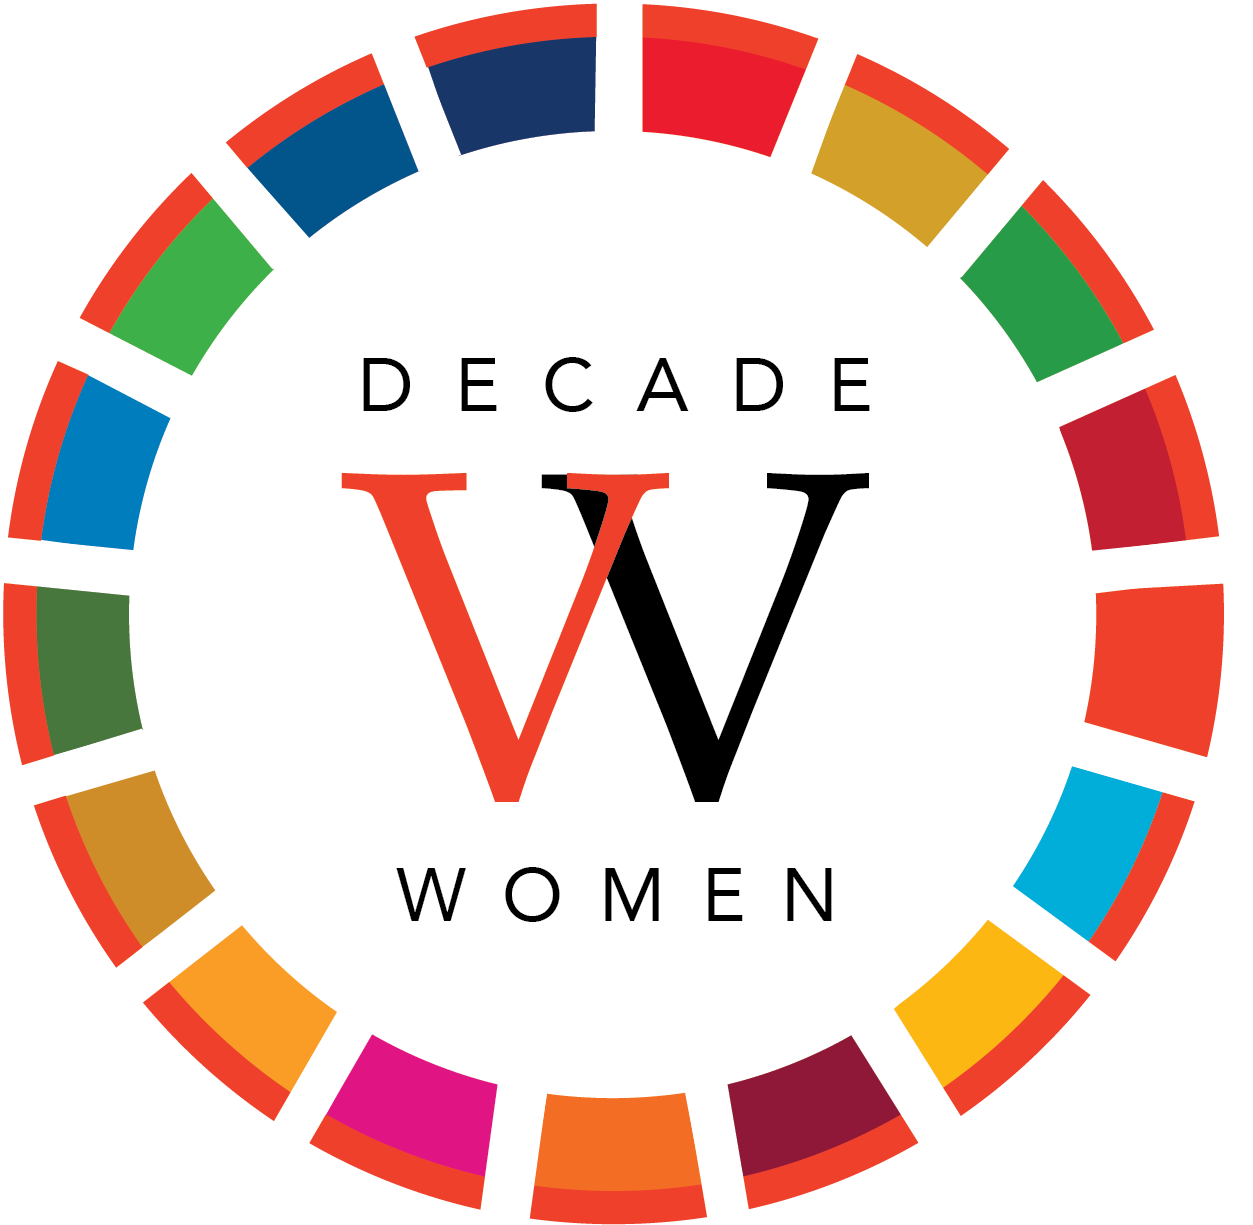 Decade Of Women Selects Laila Bokhari for Quantum Impact Award